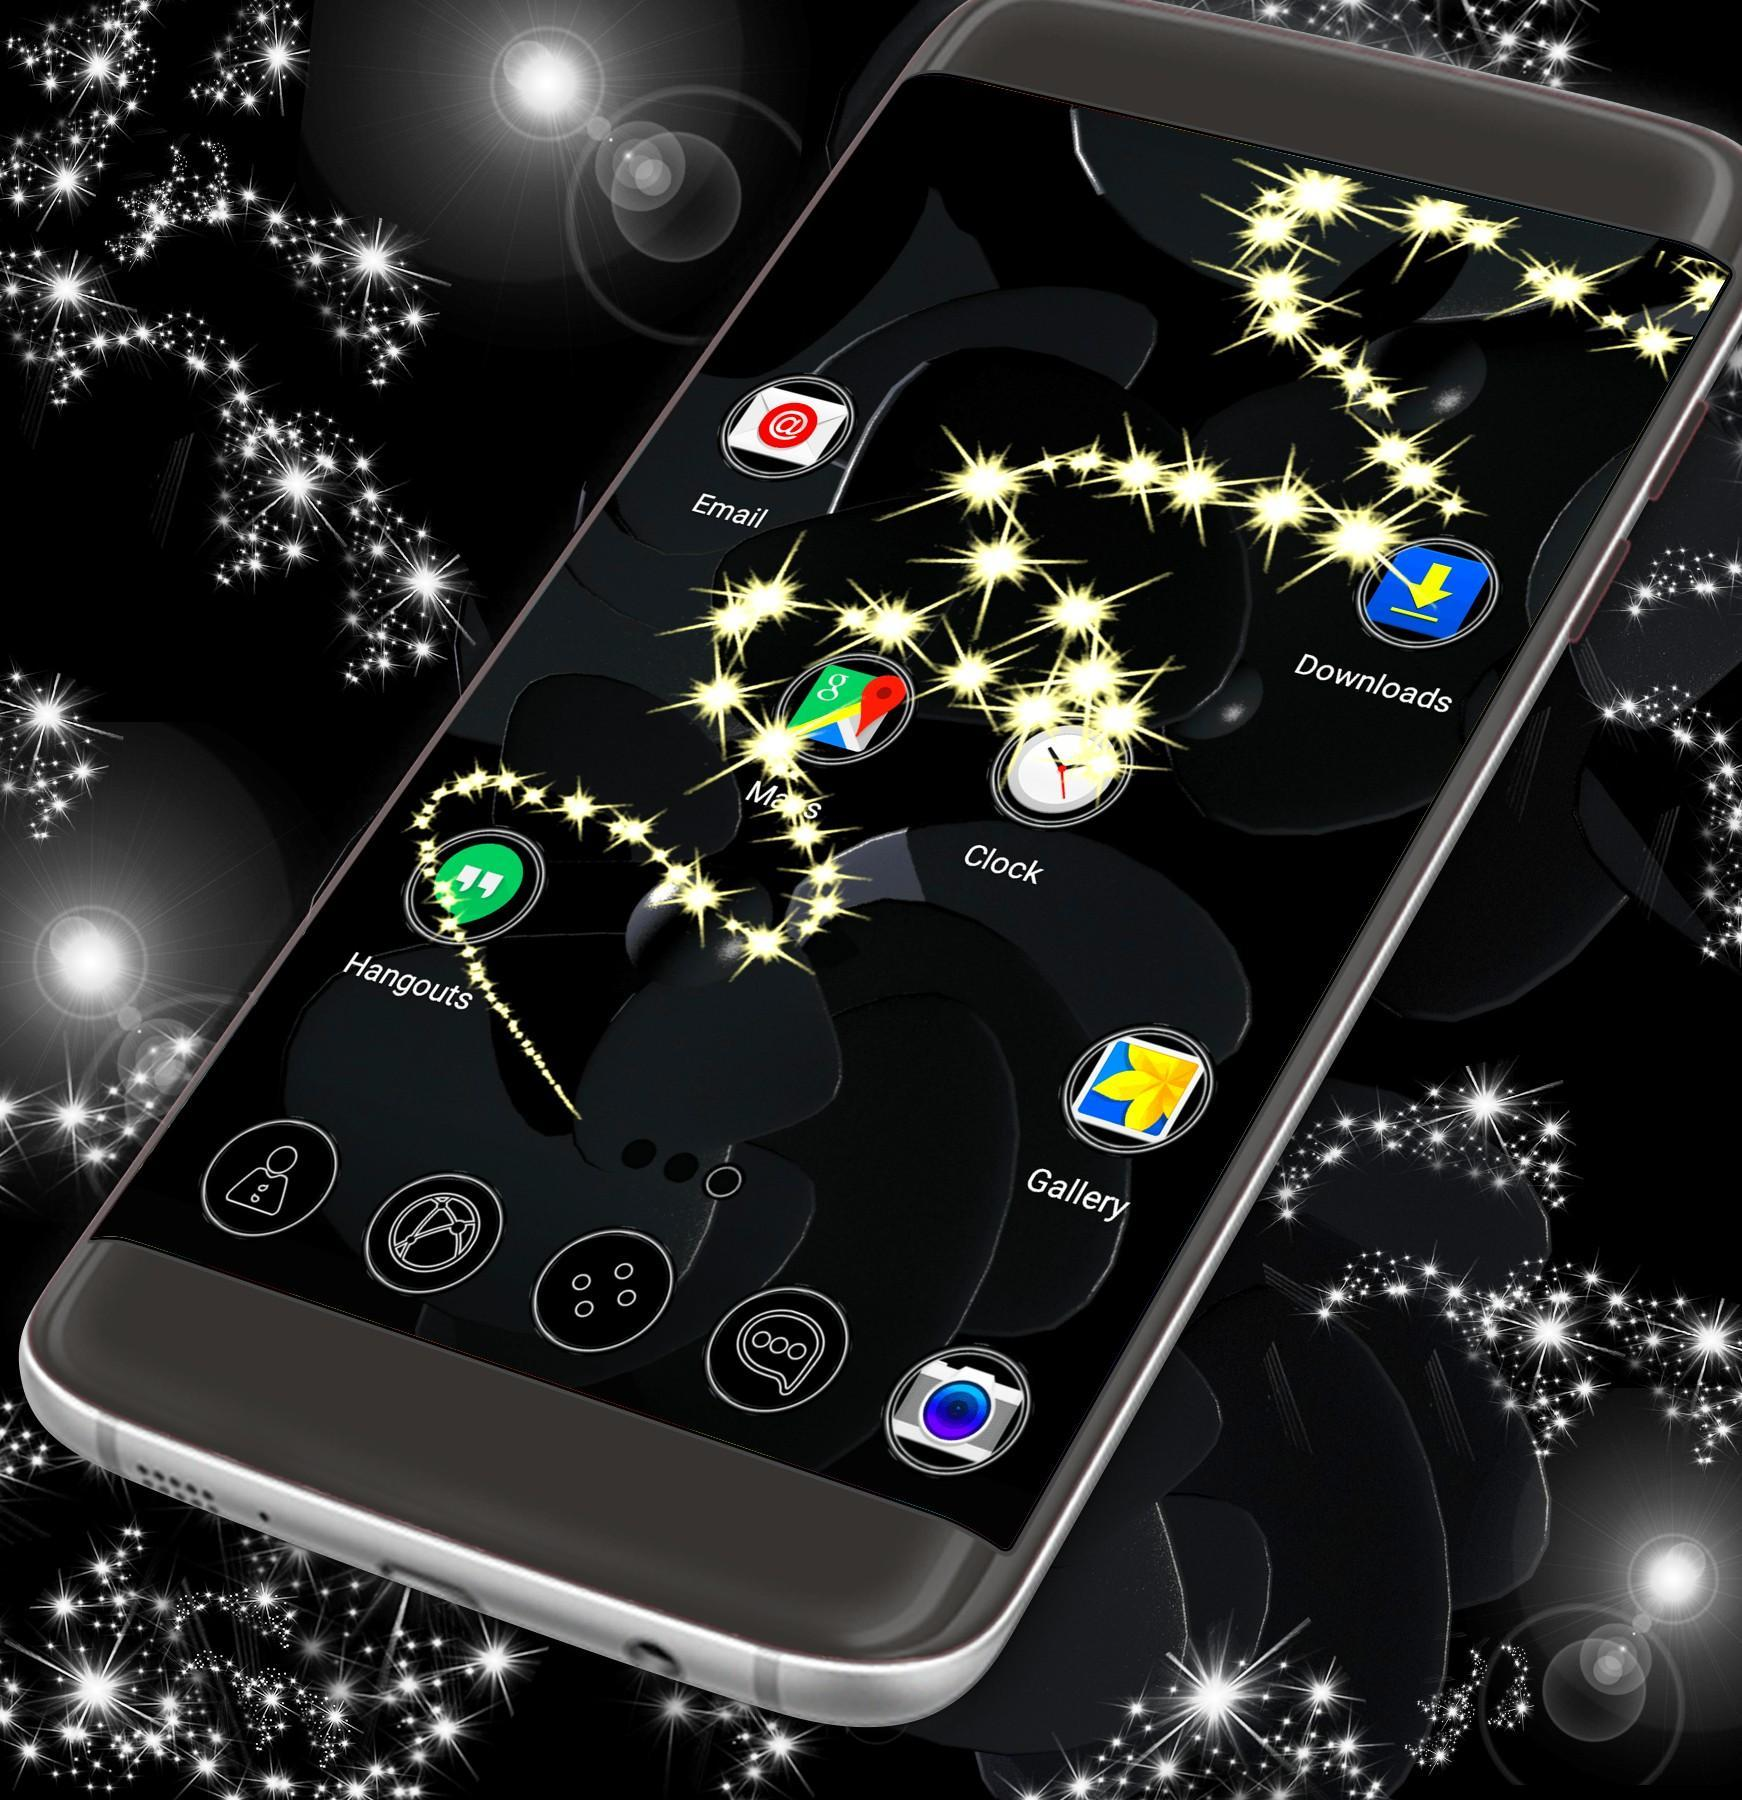 Black Themes Launcher for Android - APK Download